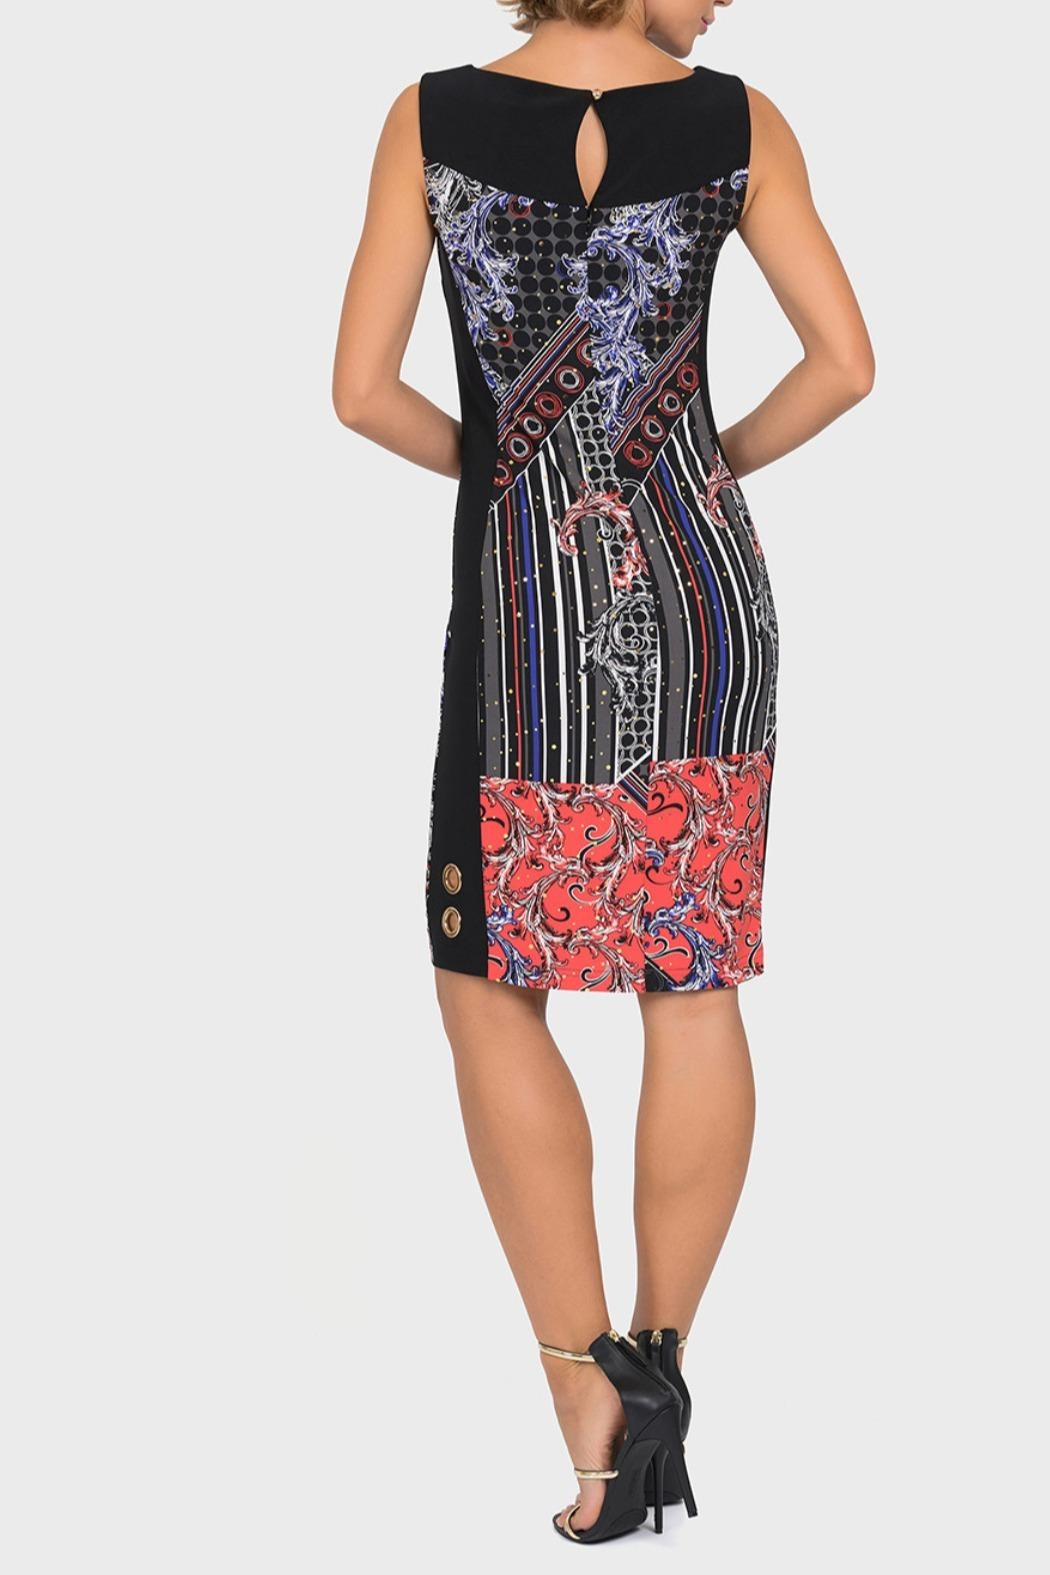 Joseph Ribkoff Multi Black Dress - Front Full Image